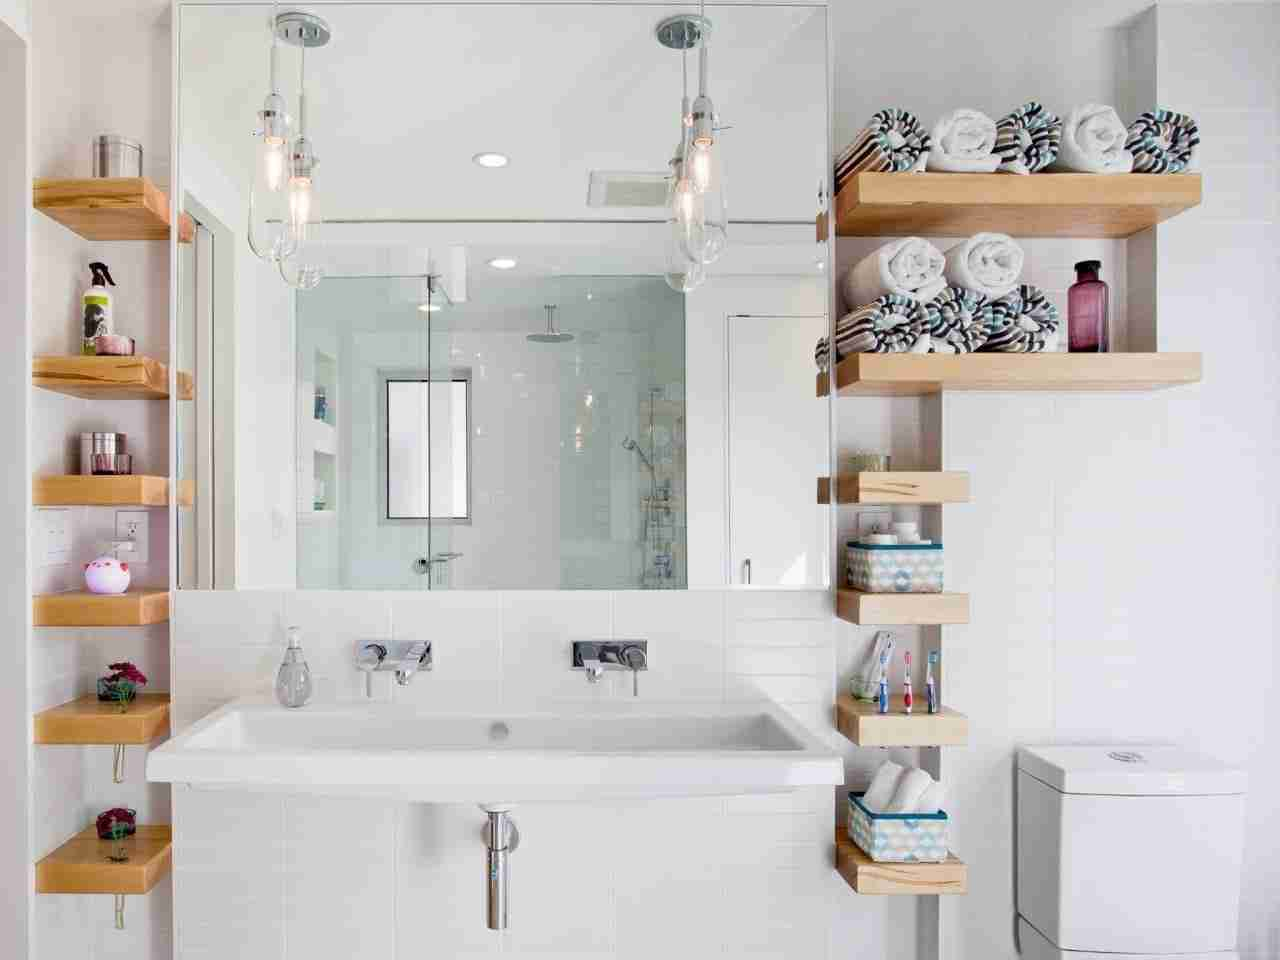 Bathroom Shelves: Fashionable Trends of Practical Interior Decoration. Snow-white modern bathroom design with wooden shelves